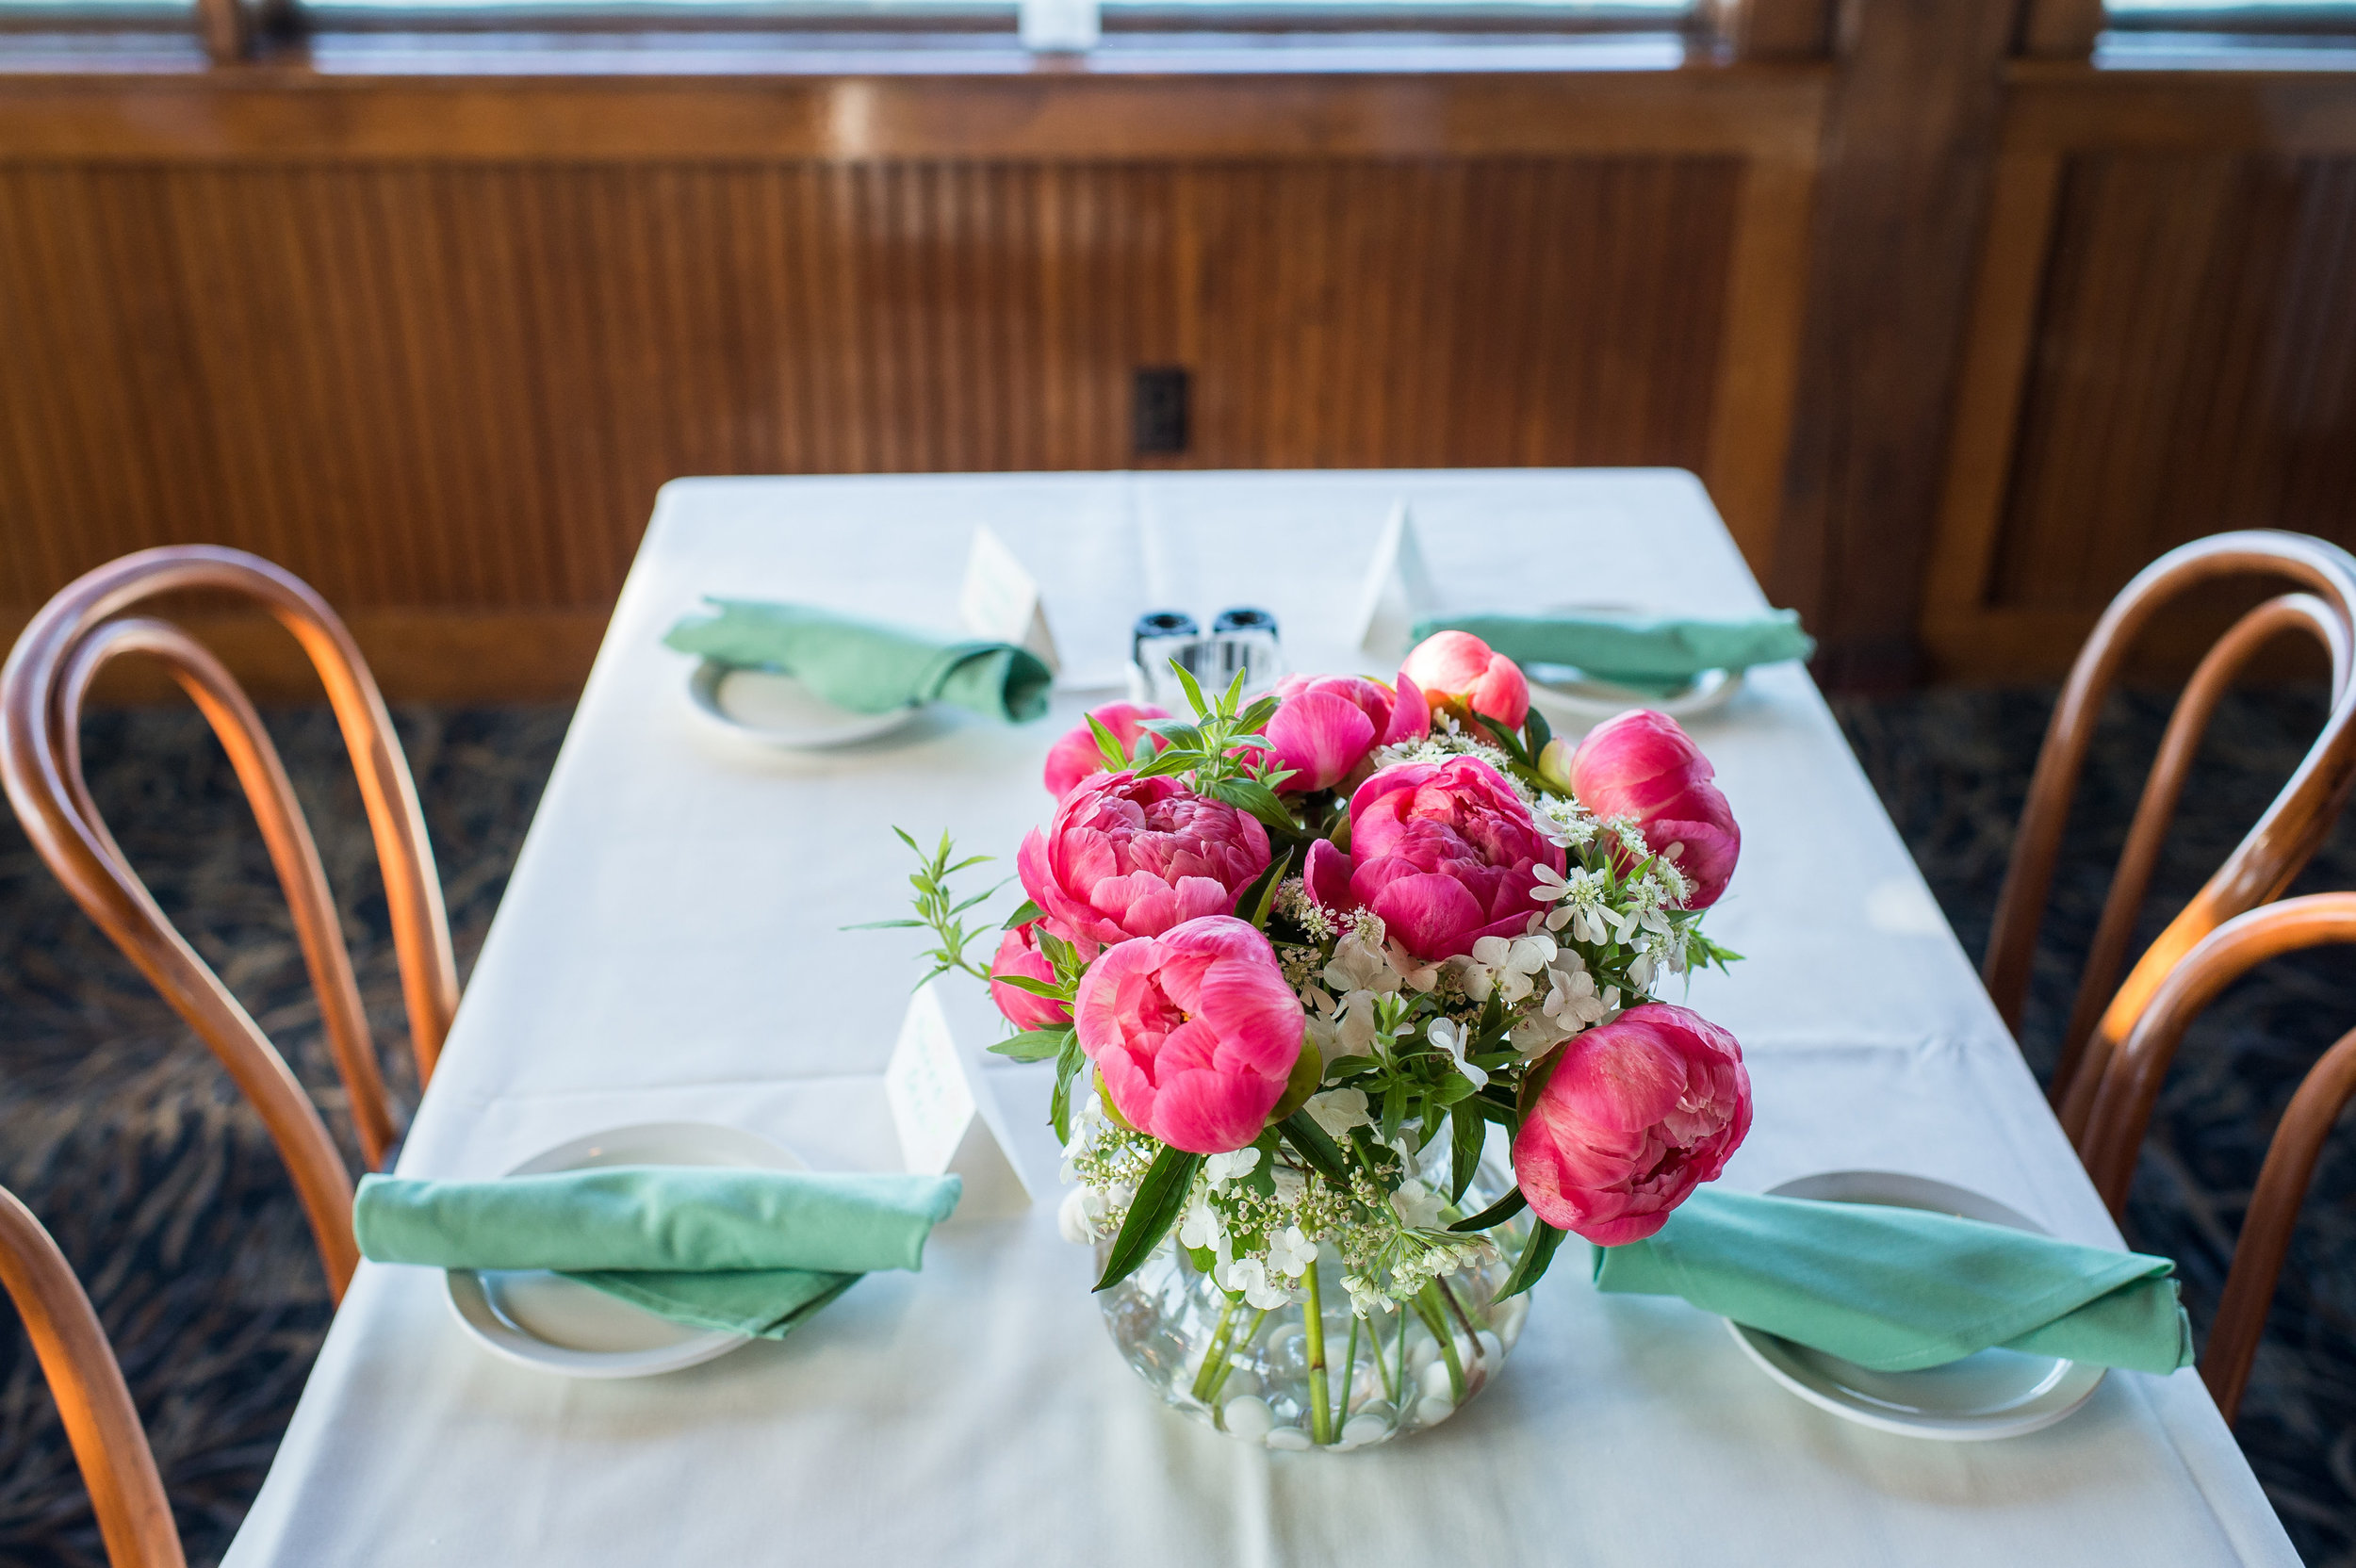 Natural and complimentary colors set the scene for a beautiful morning reception.